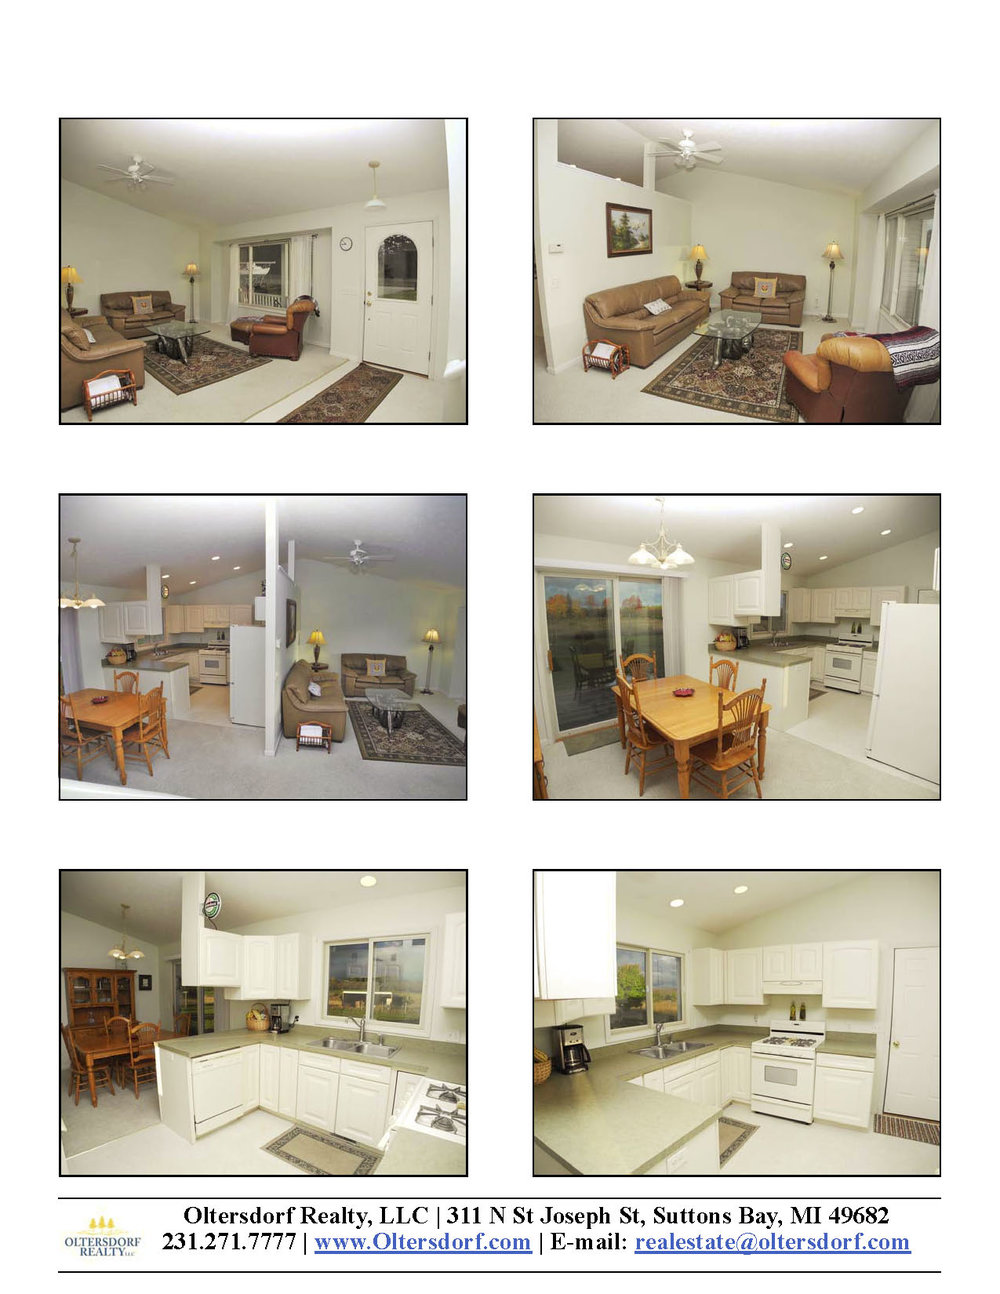 6100 S Grapevine Trail, Suttons Bay, Leelanau County Home for sale by Oltersdorf Realty LLC - Marketing Packet (4).jpg